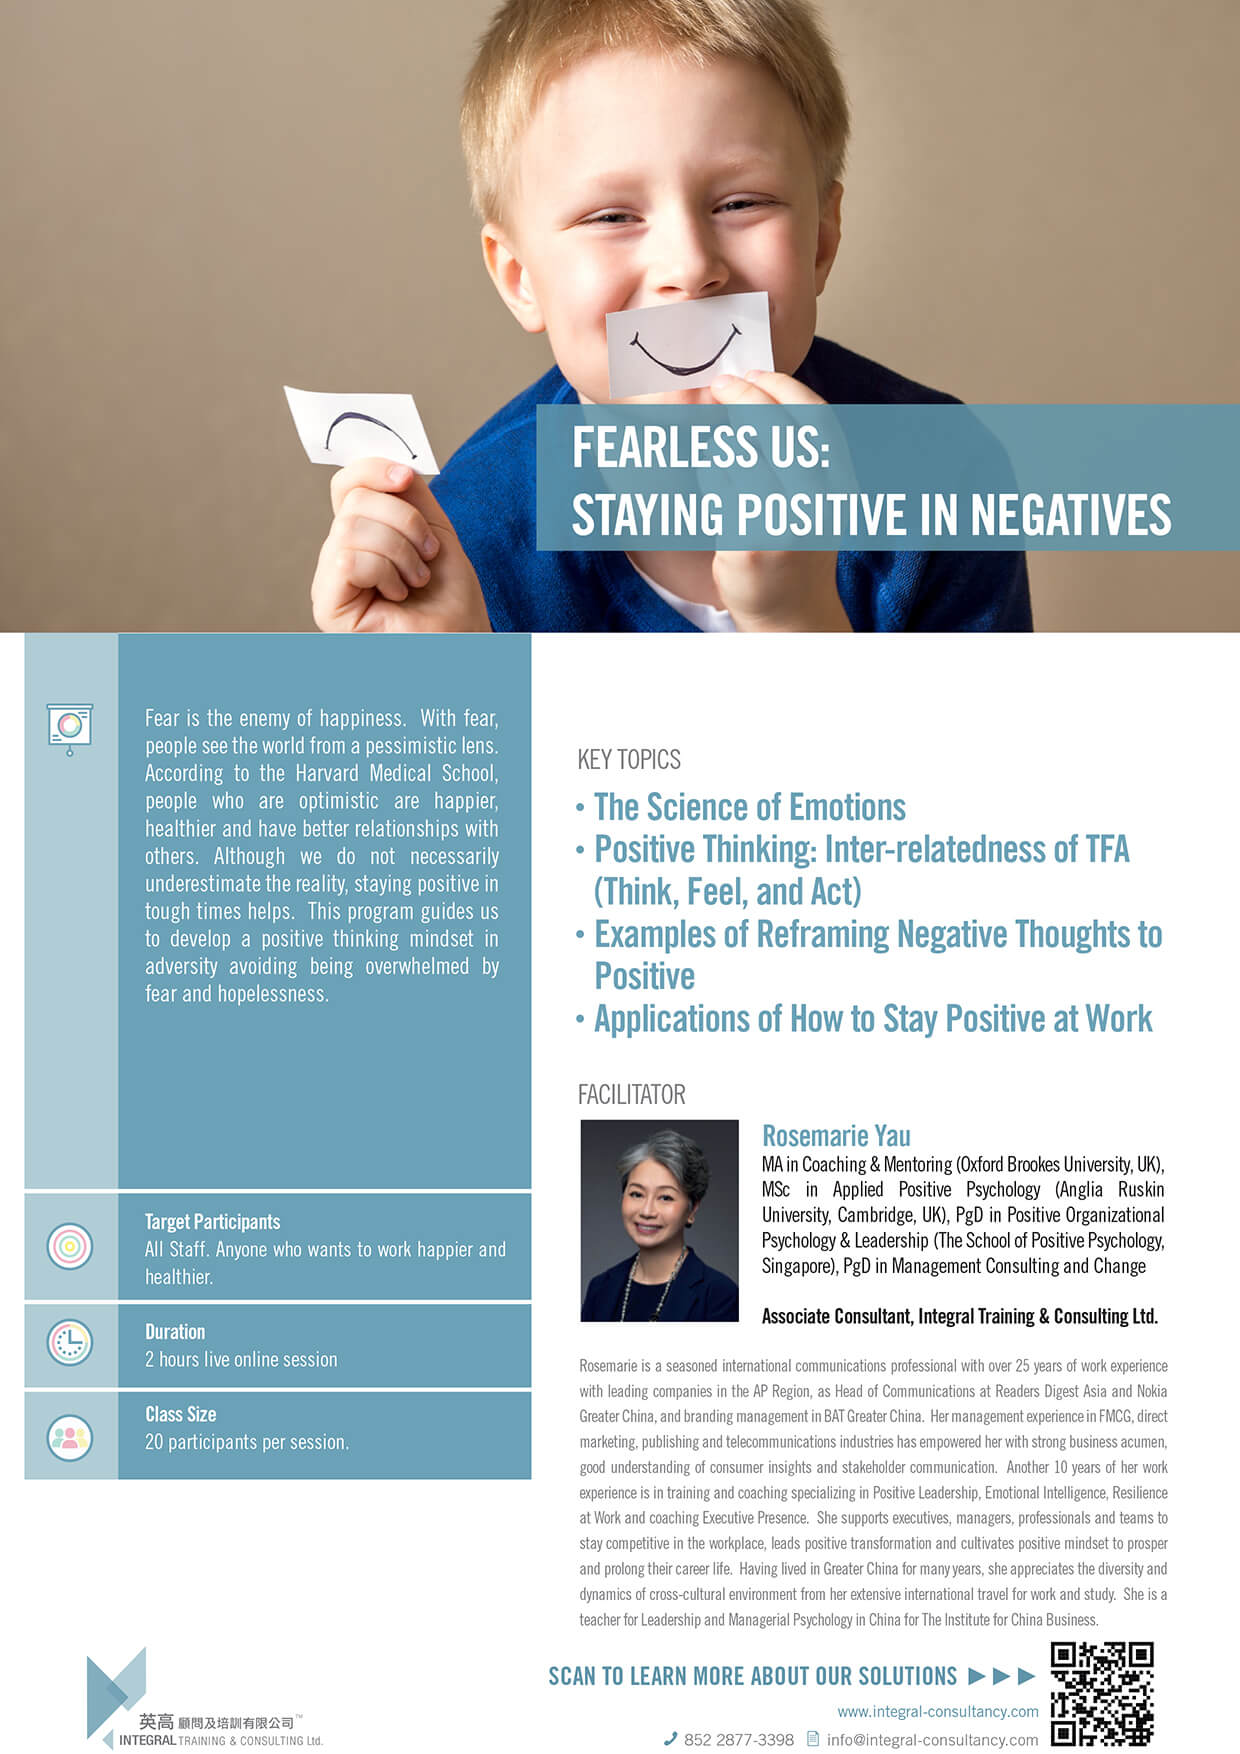 Fearless Us: Staying Positive in Negatives